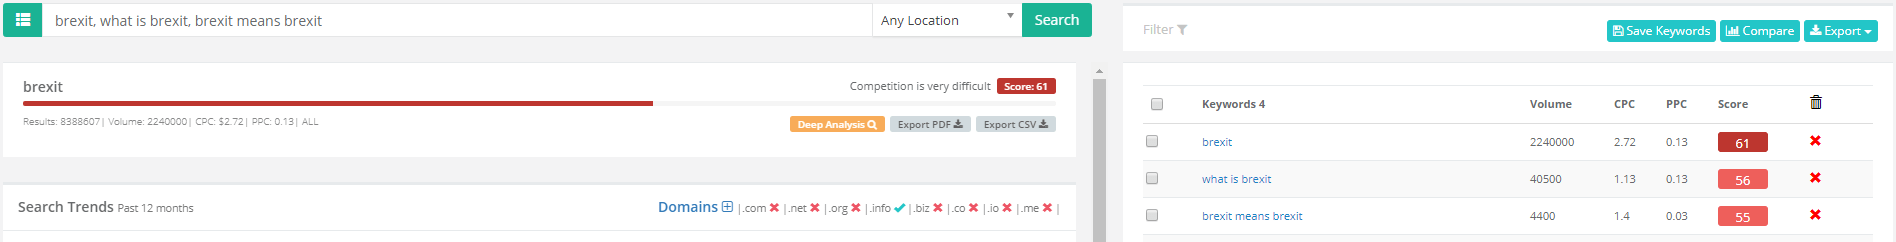 KeySearch Review - KeySearch Quick Difficulty Tool